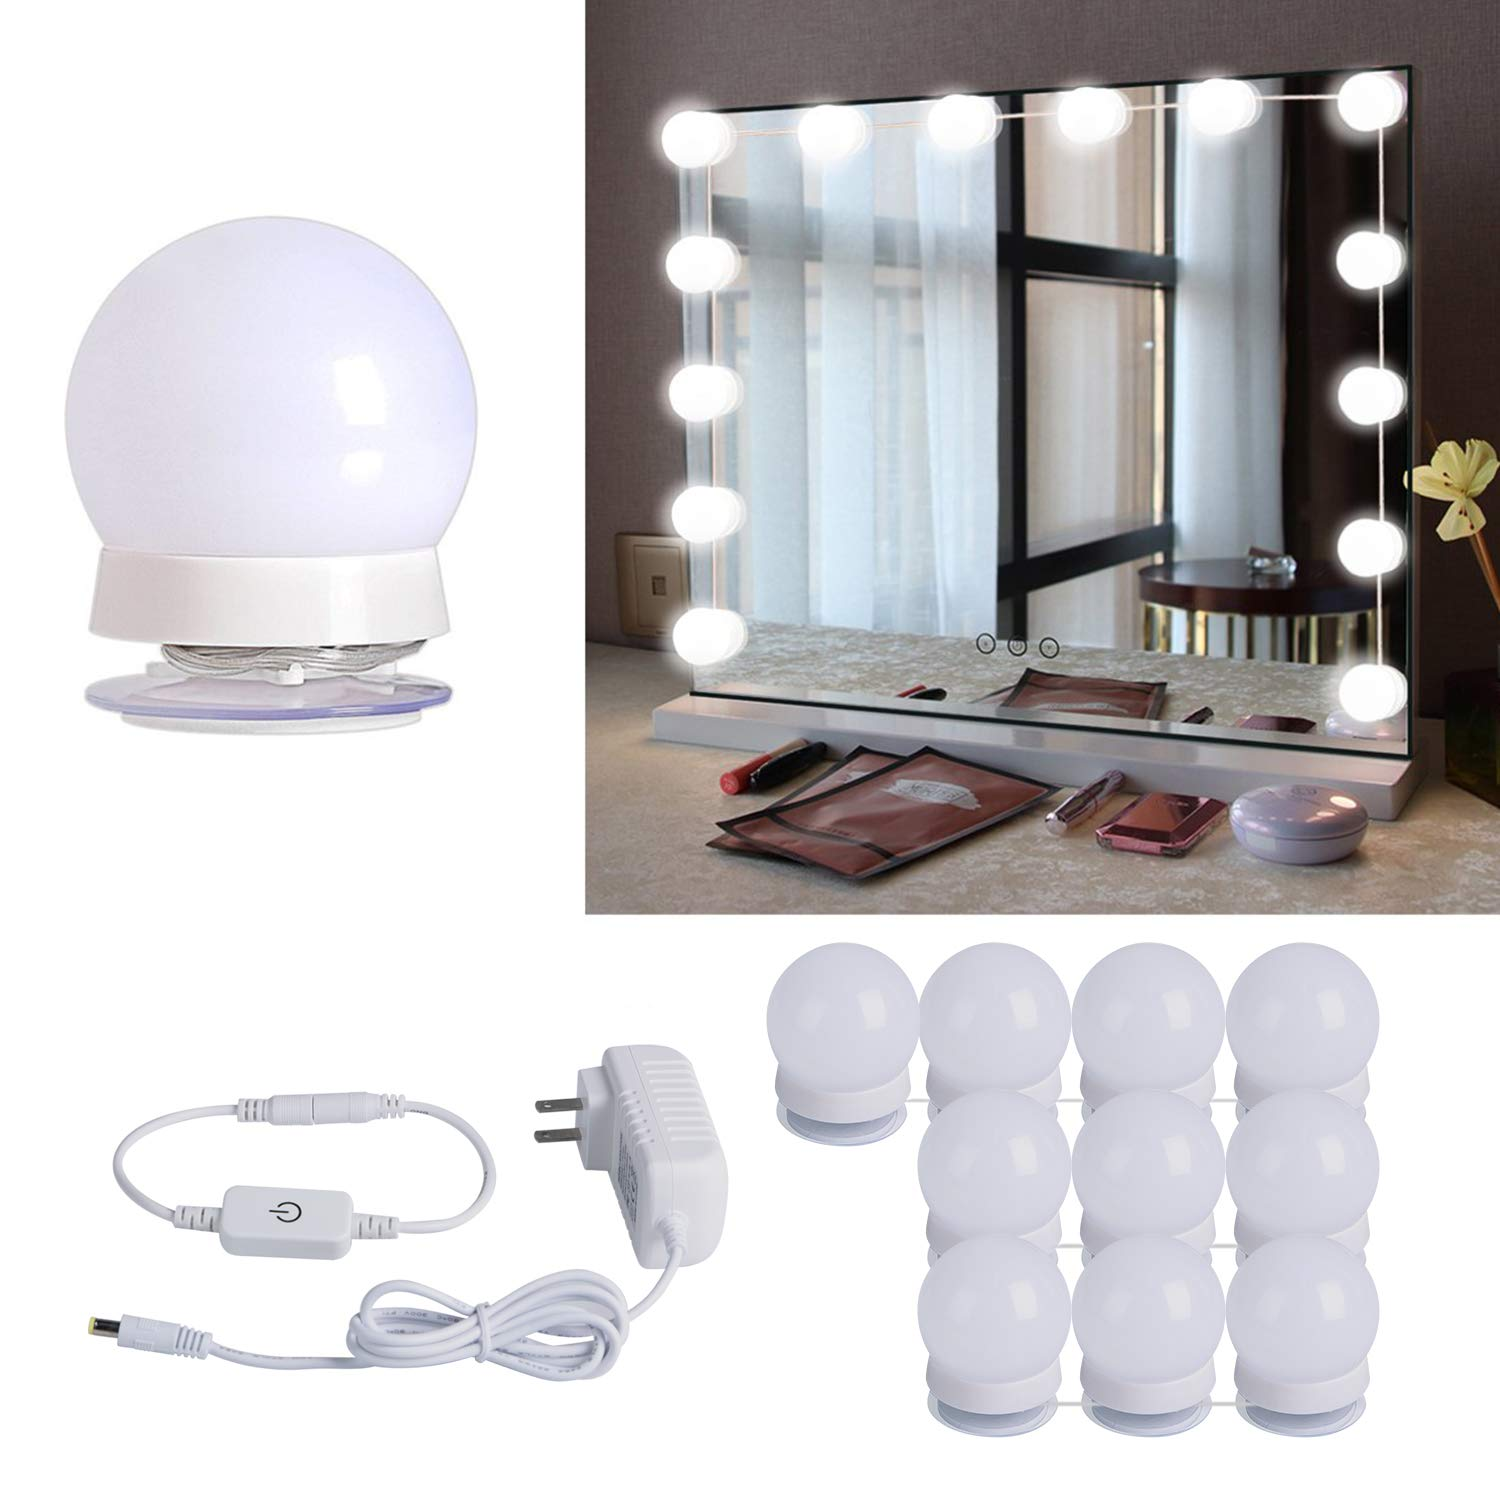 Hollywood Dimmable Dressing Lighting Fixture